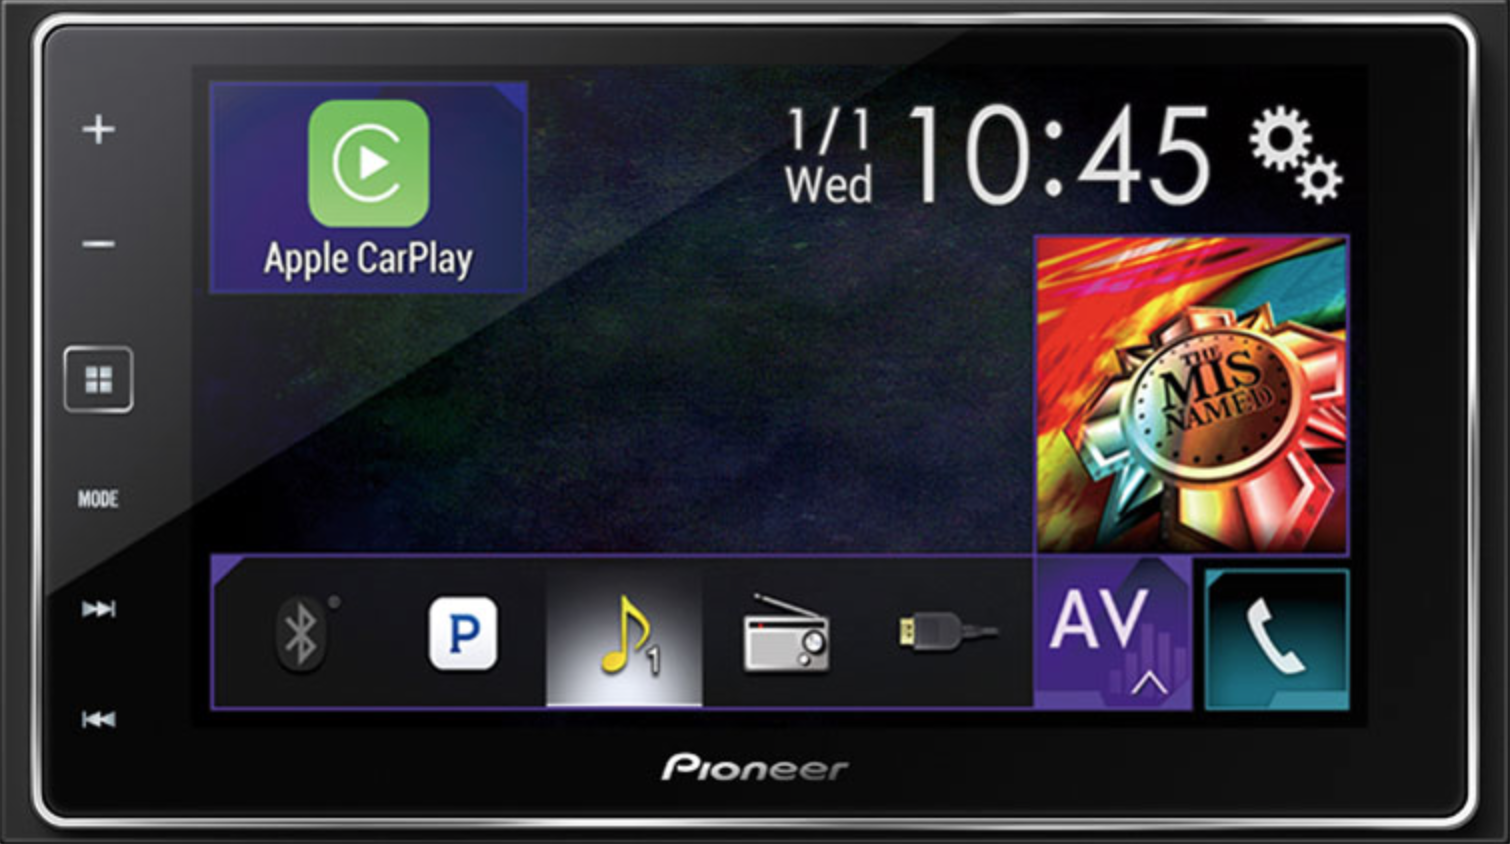 AppRadioWorld - Apple CarPlay, Android Auto, Car Technology News